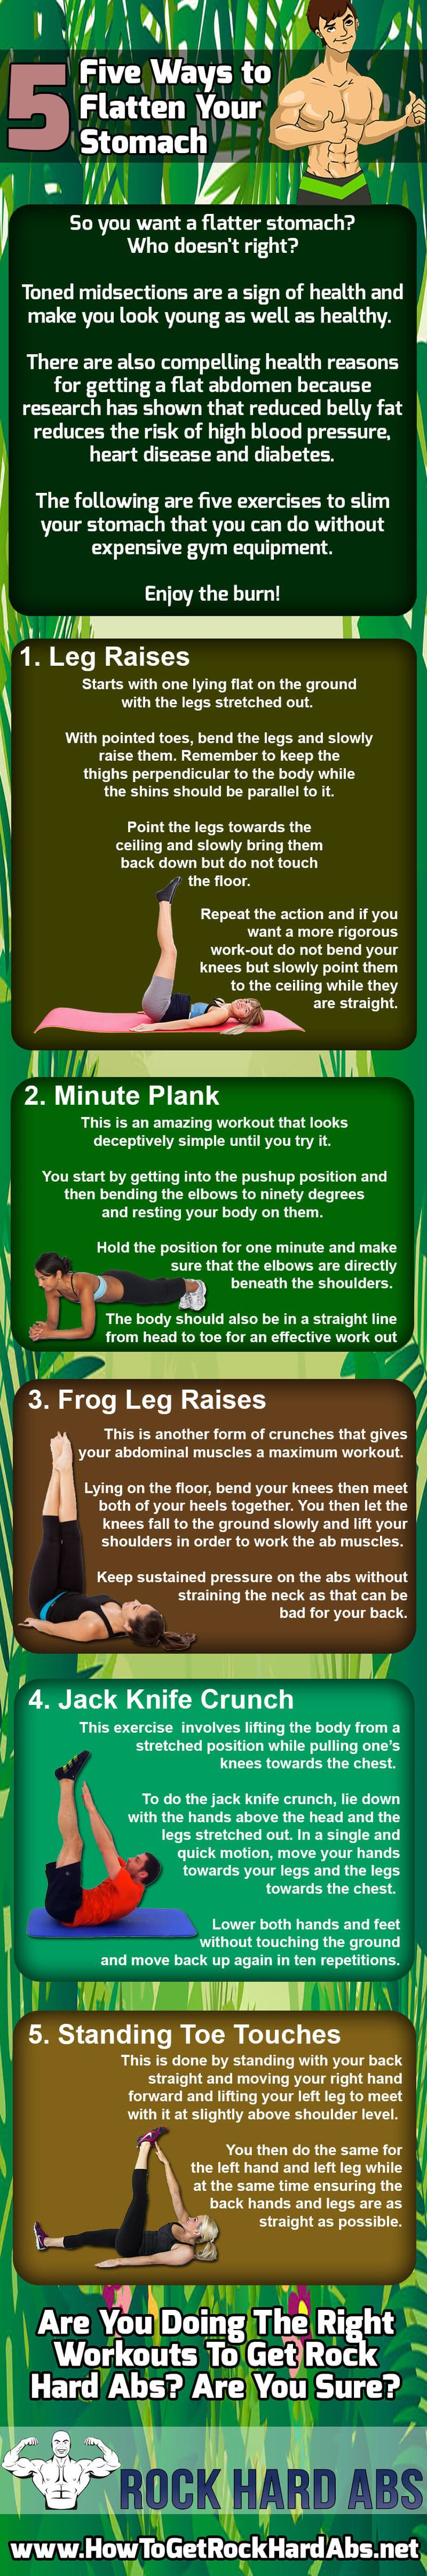 Looking for some awesome exercises to help flatten your tummy area? If so look no further than this new infographic we put together for you that shares 5 ways to flatten your stomach. If we missed an exercise you think we should have included on it please let us know so we can add it to our next graphic! #infographic